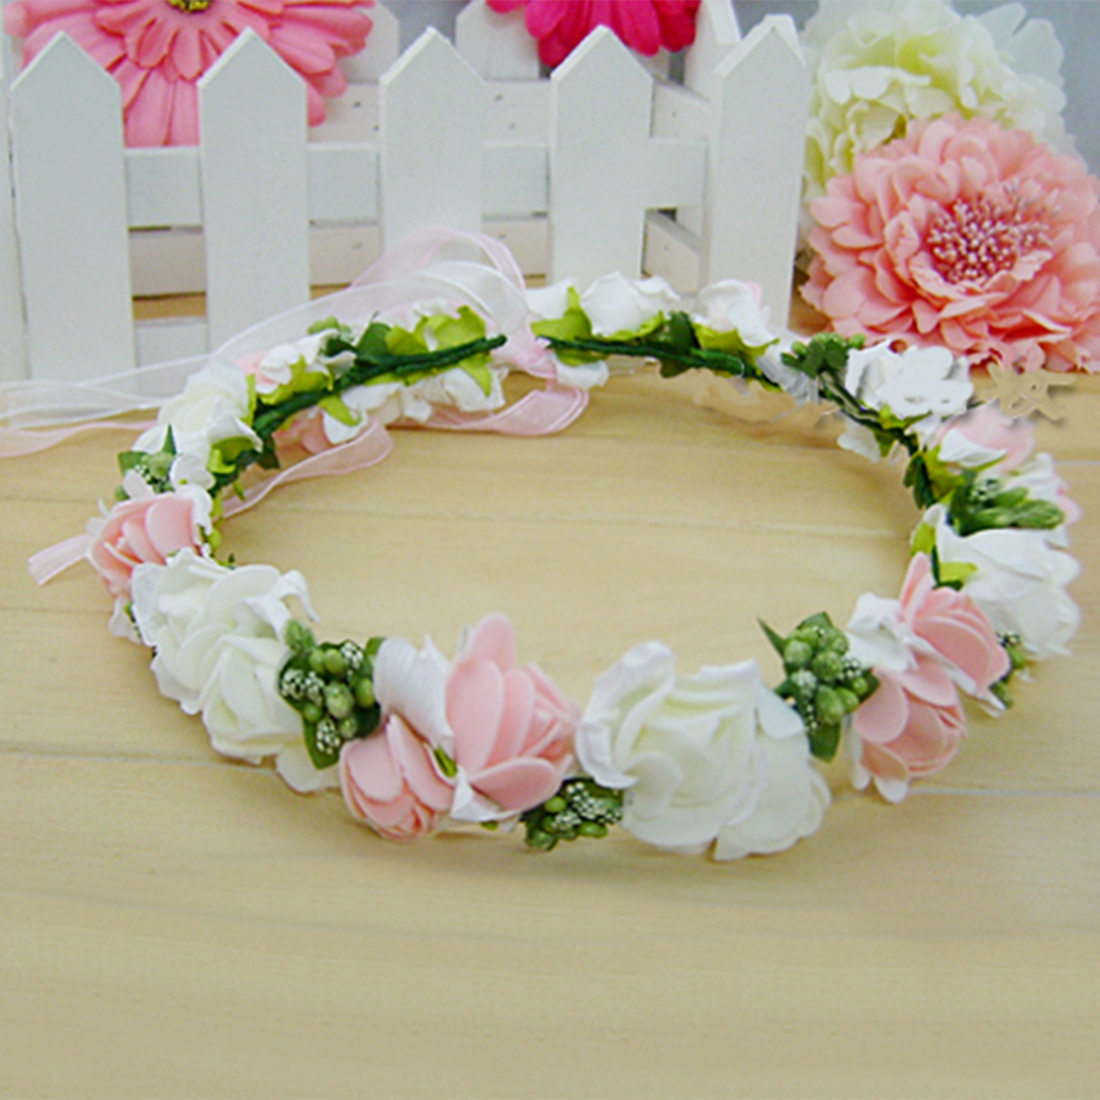 Elegant Bridal Wreath Flower Headband Hair Band Floral Crown Garland for Festival Wedding Beach - Pink + White